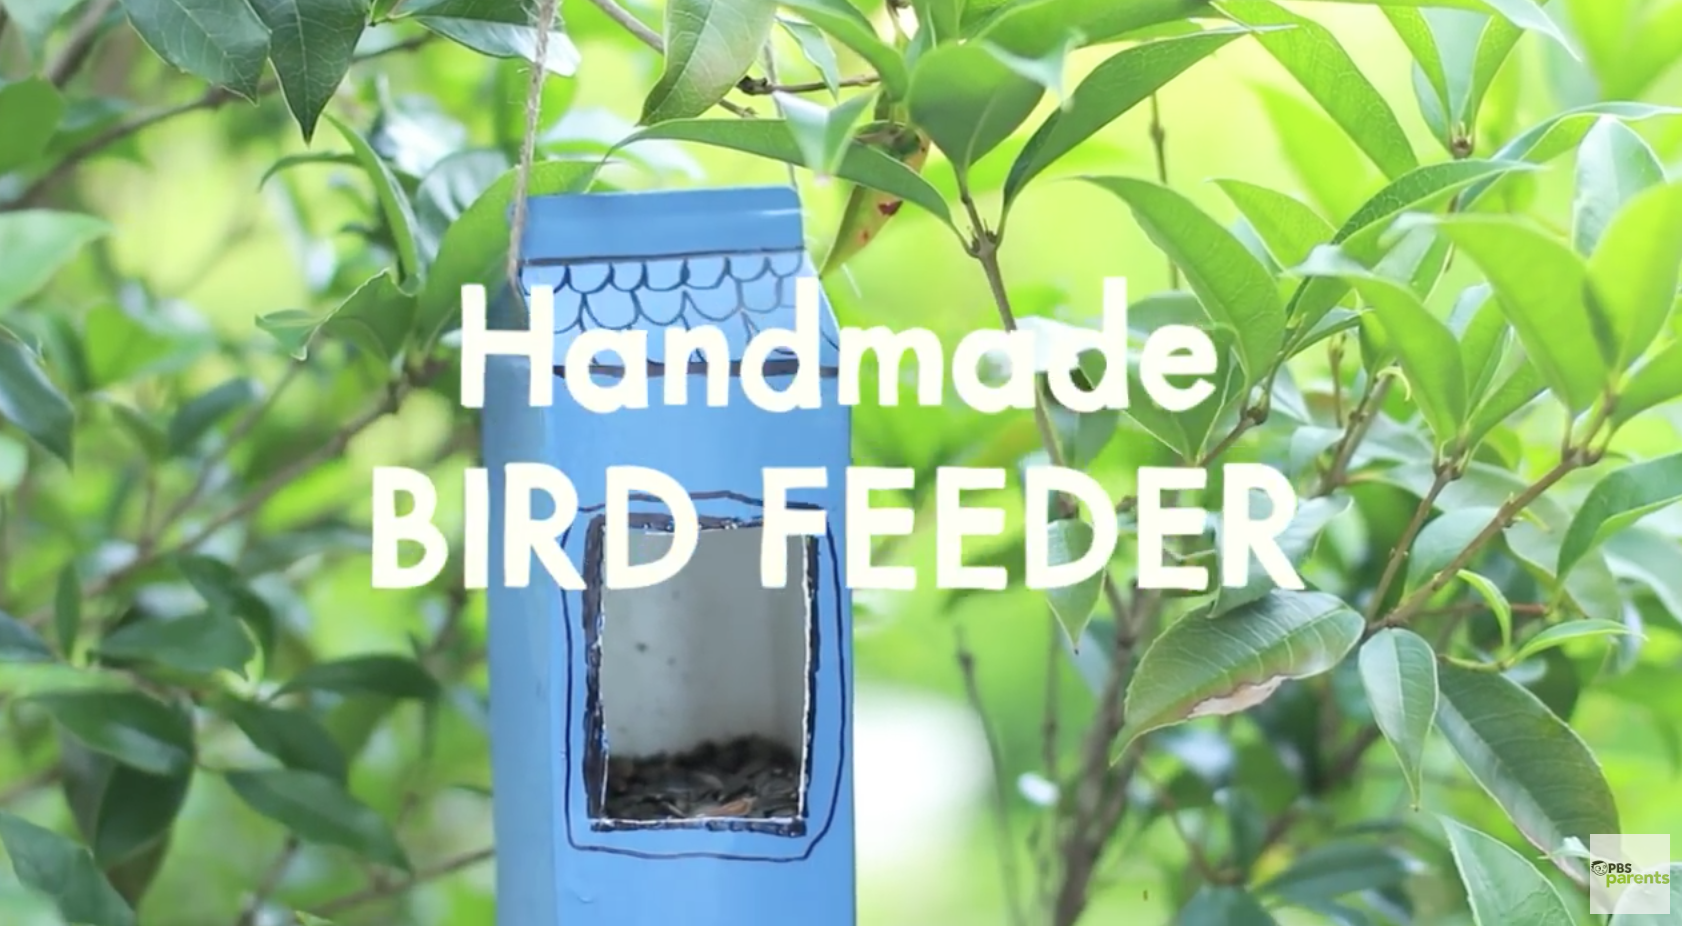 Handmade Bird Feeder